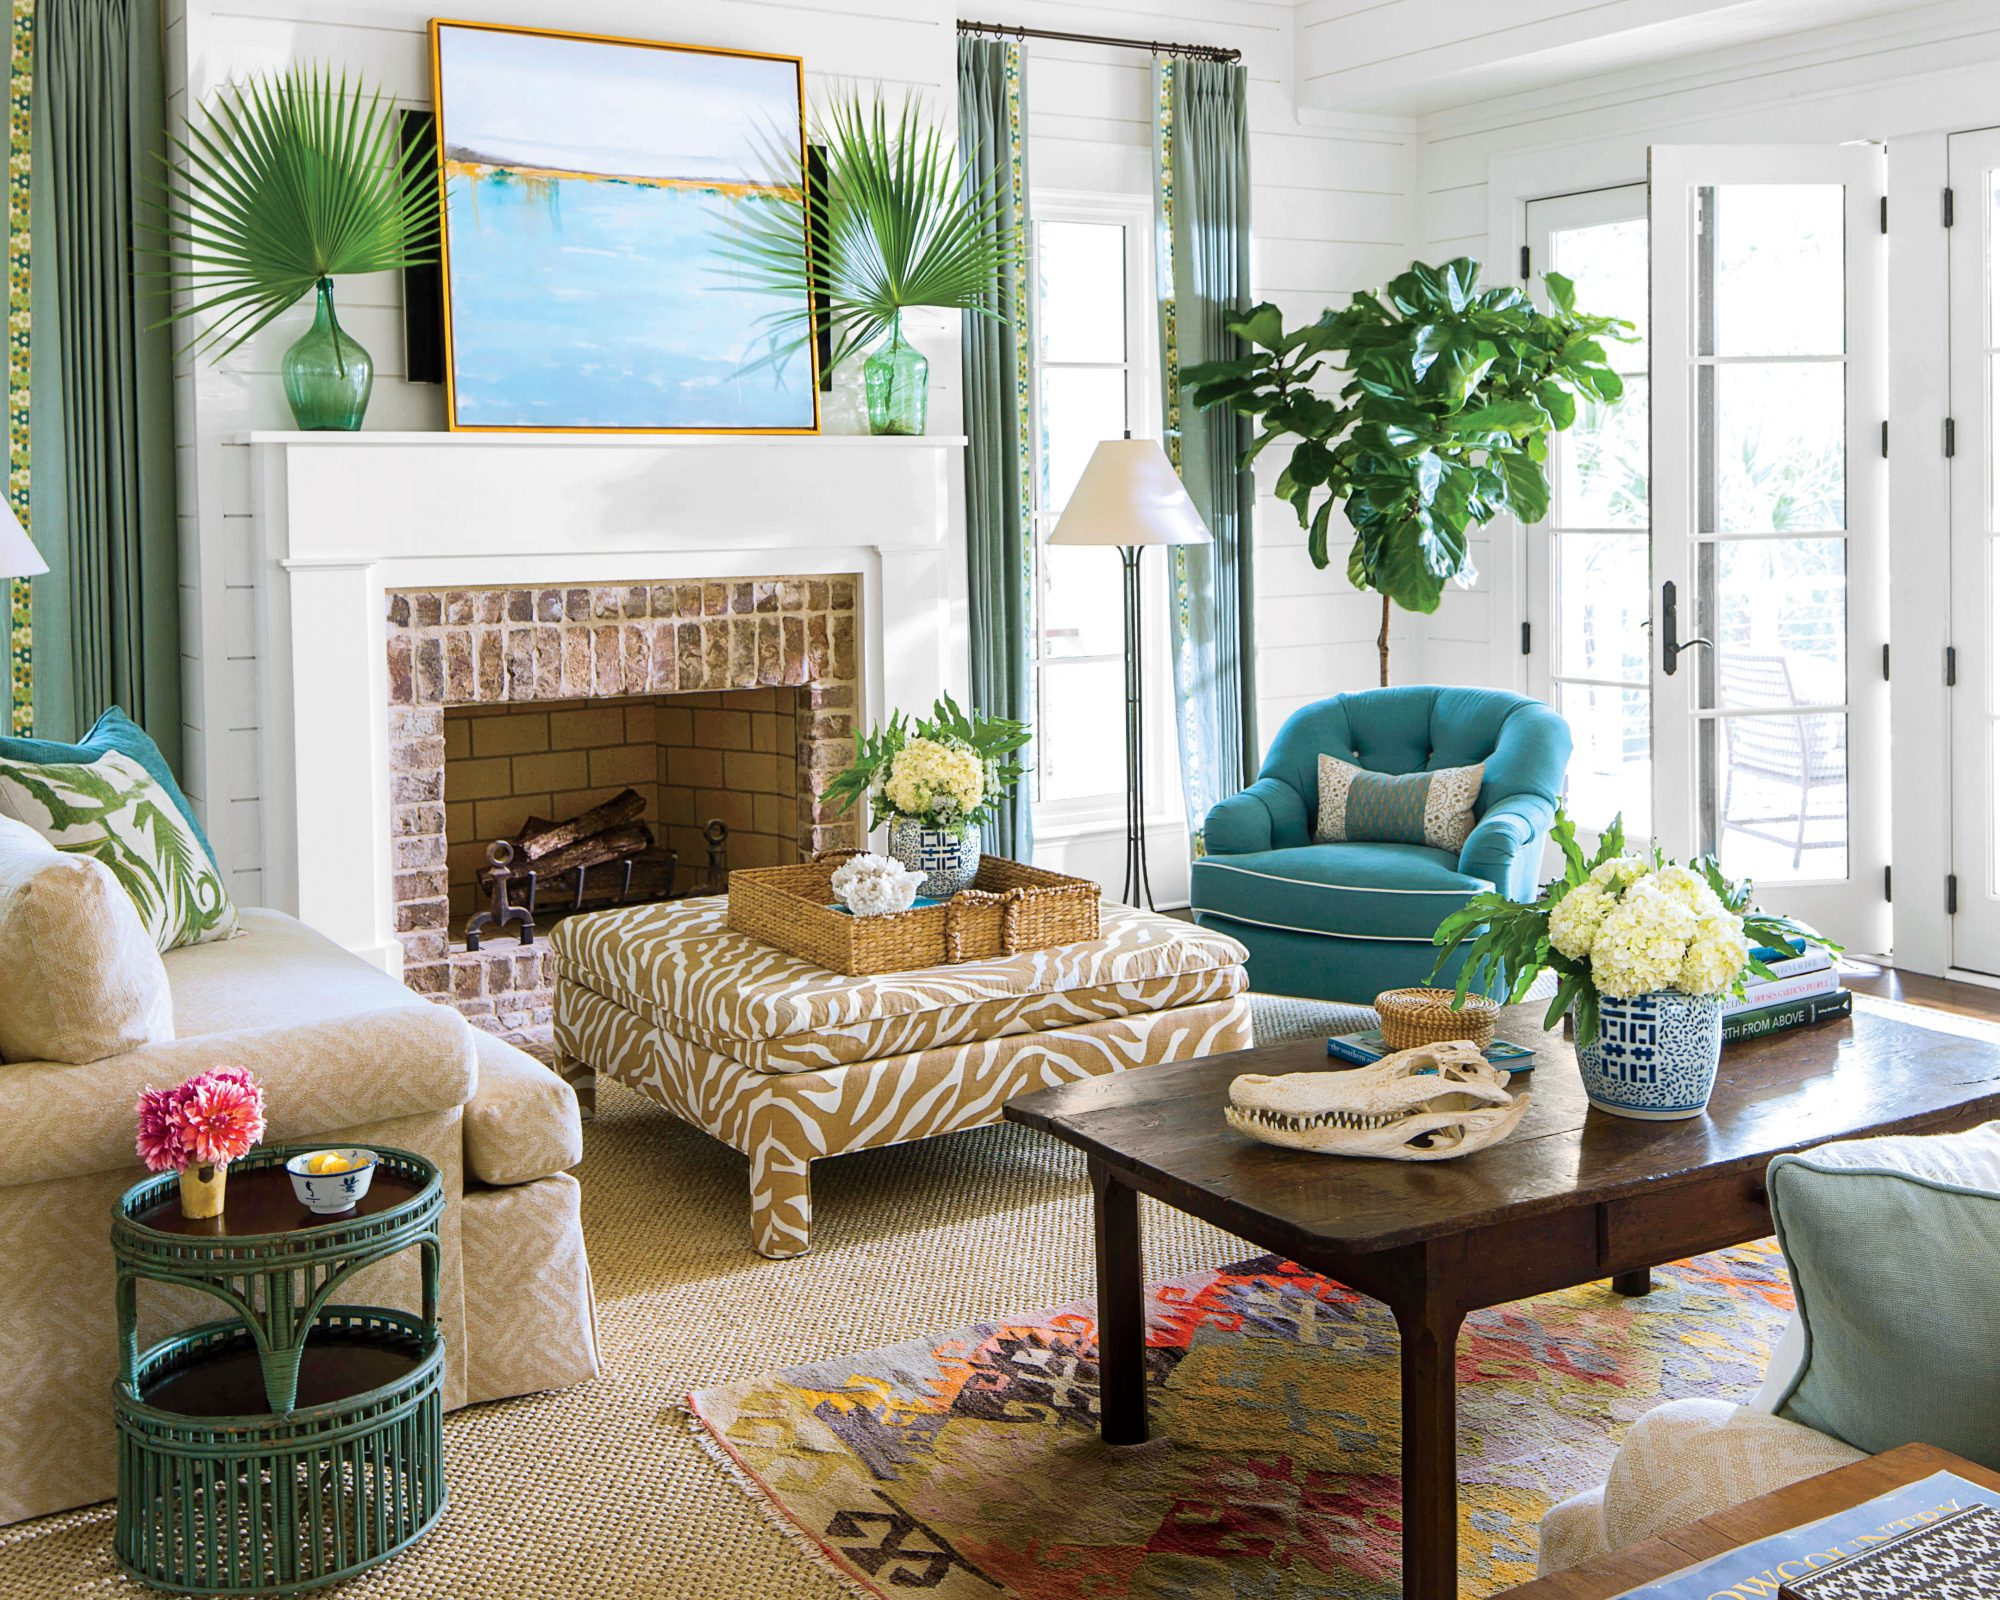 106 living room decorating ideas southern living - Decorating Ideas